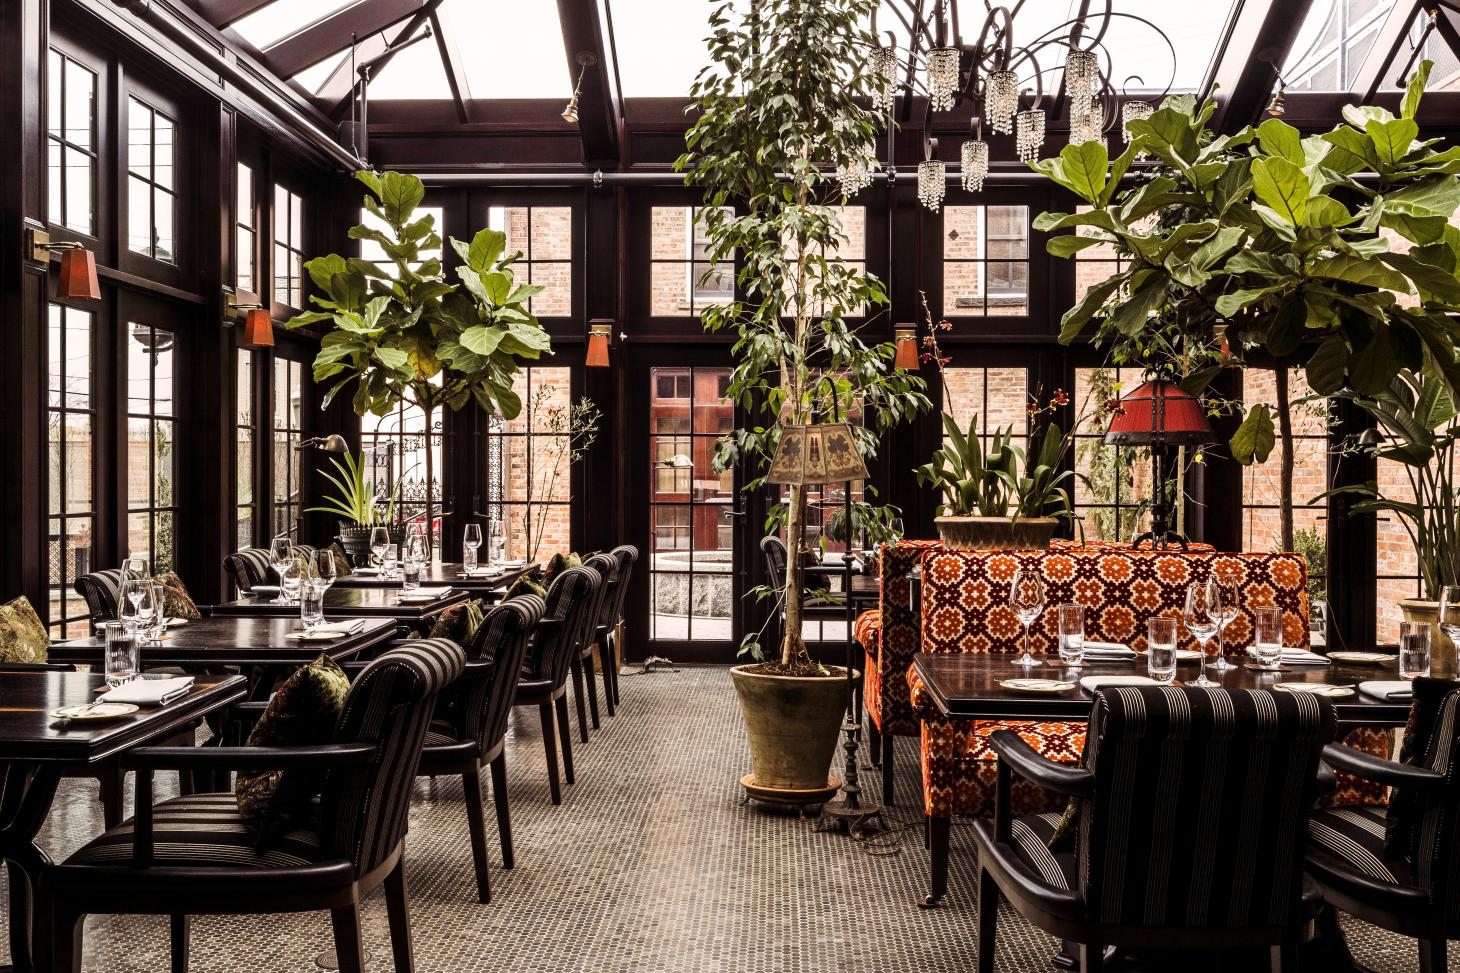 The conservatory dining room at The Maker hotel in Hudson, New York